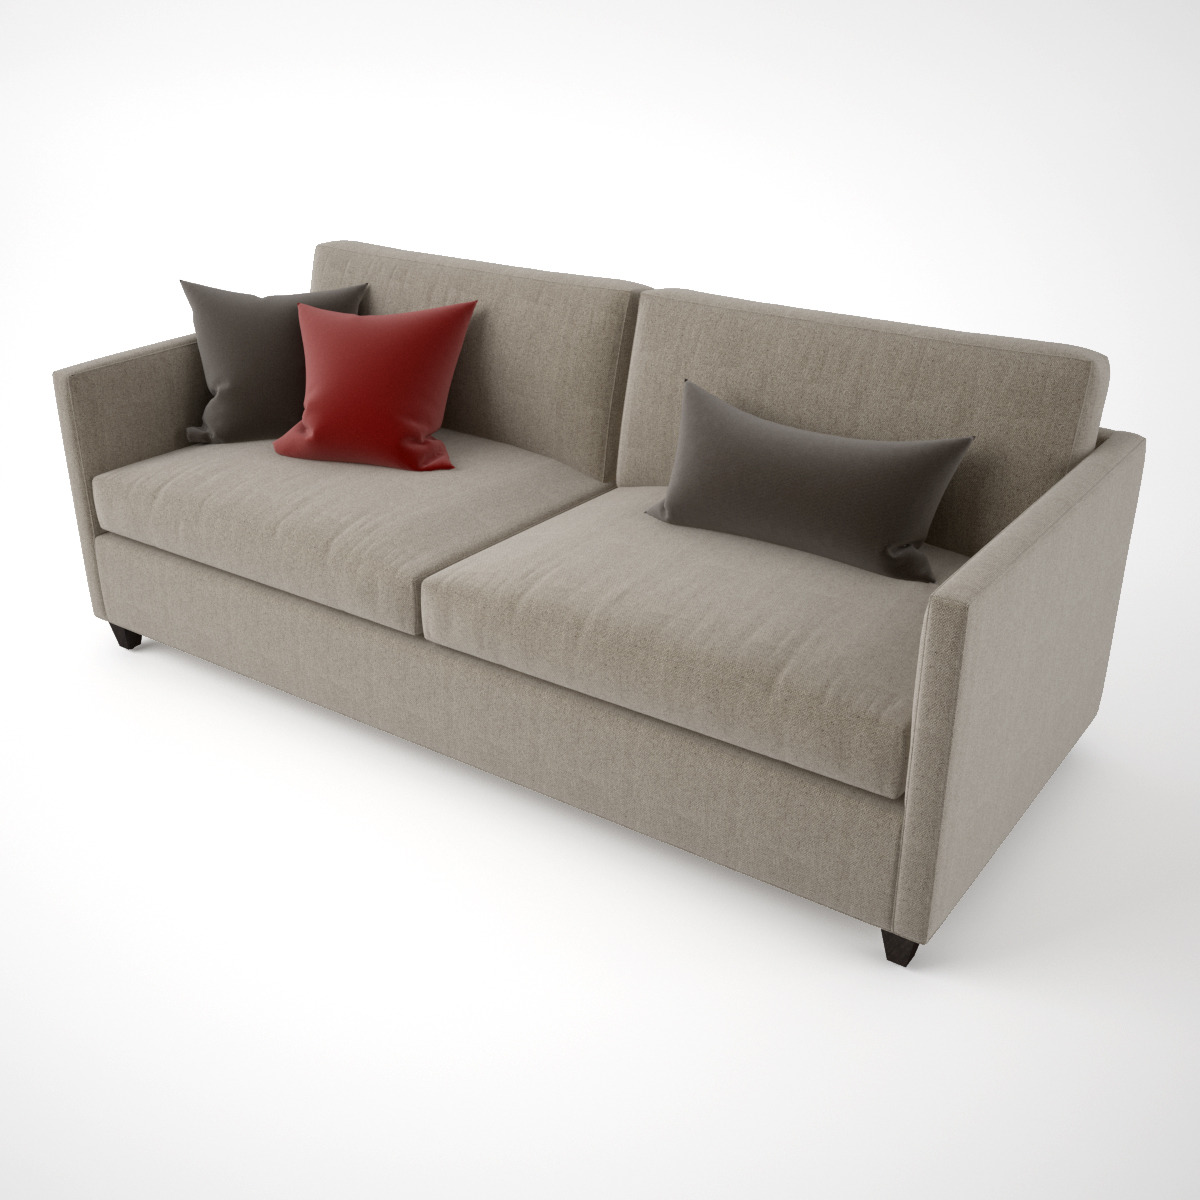 Crate and Barrel Couch | Crate and Barrel Sofa Bed | Crate and Barrel Style Furniture for Less